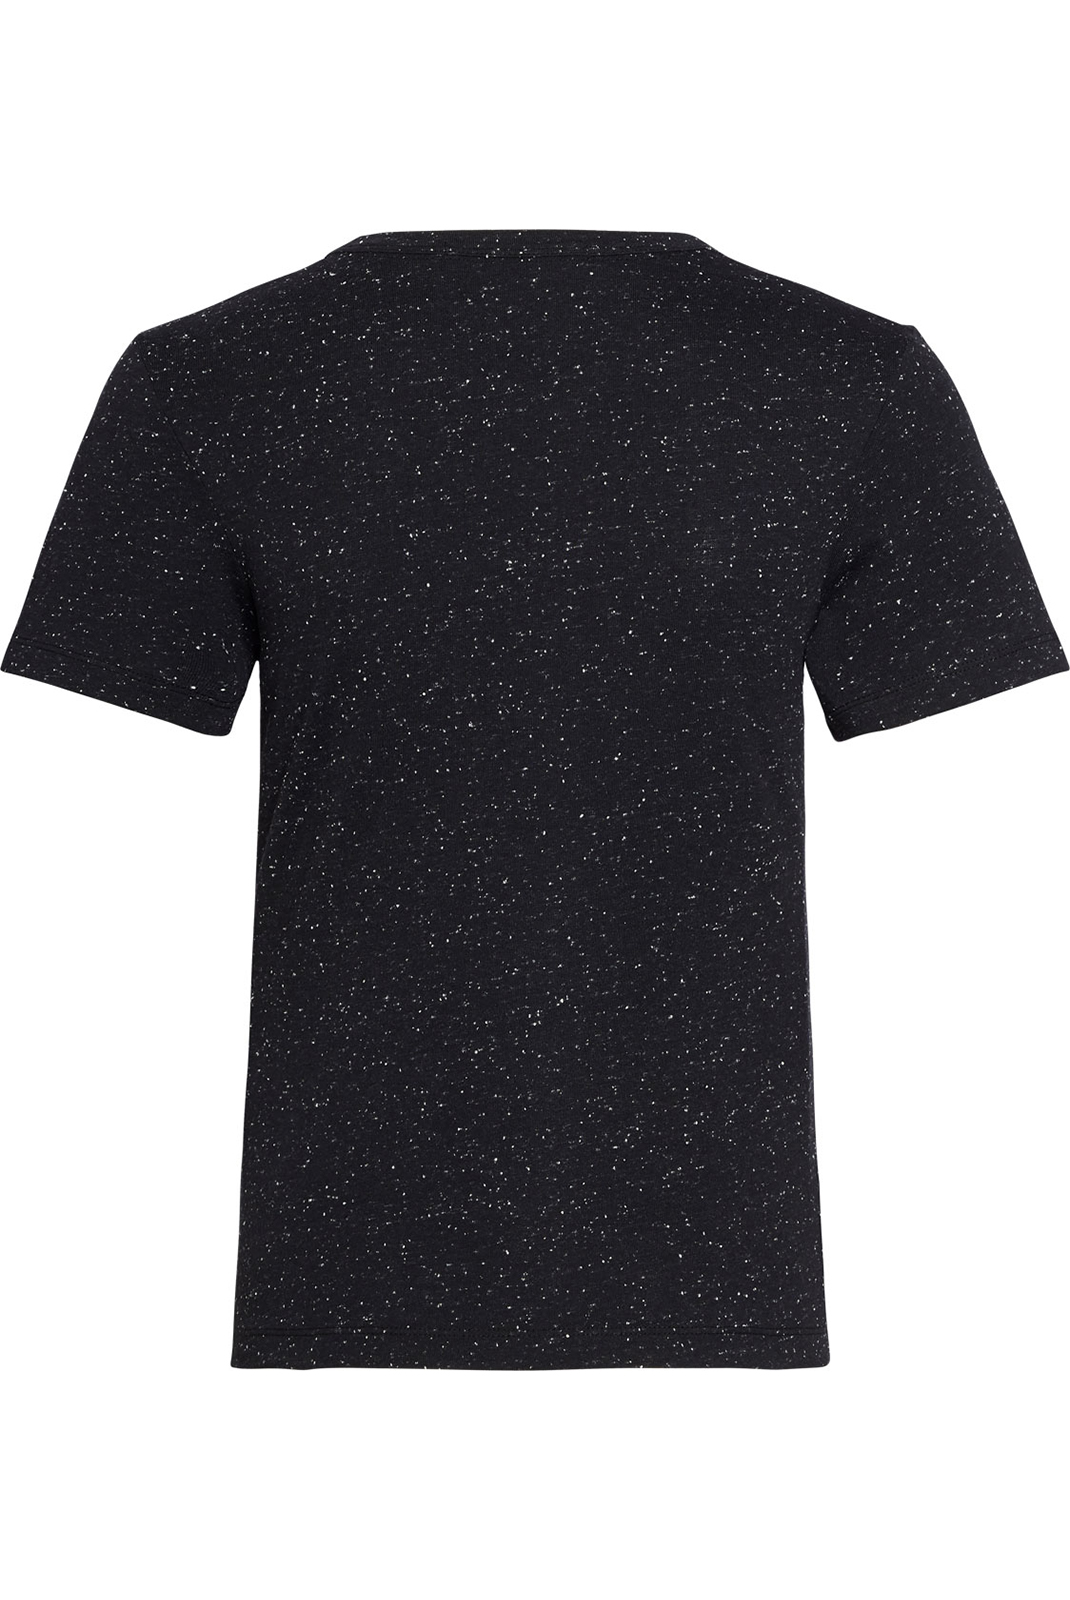 Tee shirt  Calvin klein J20J213016 BD1 BLACK HEATHER